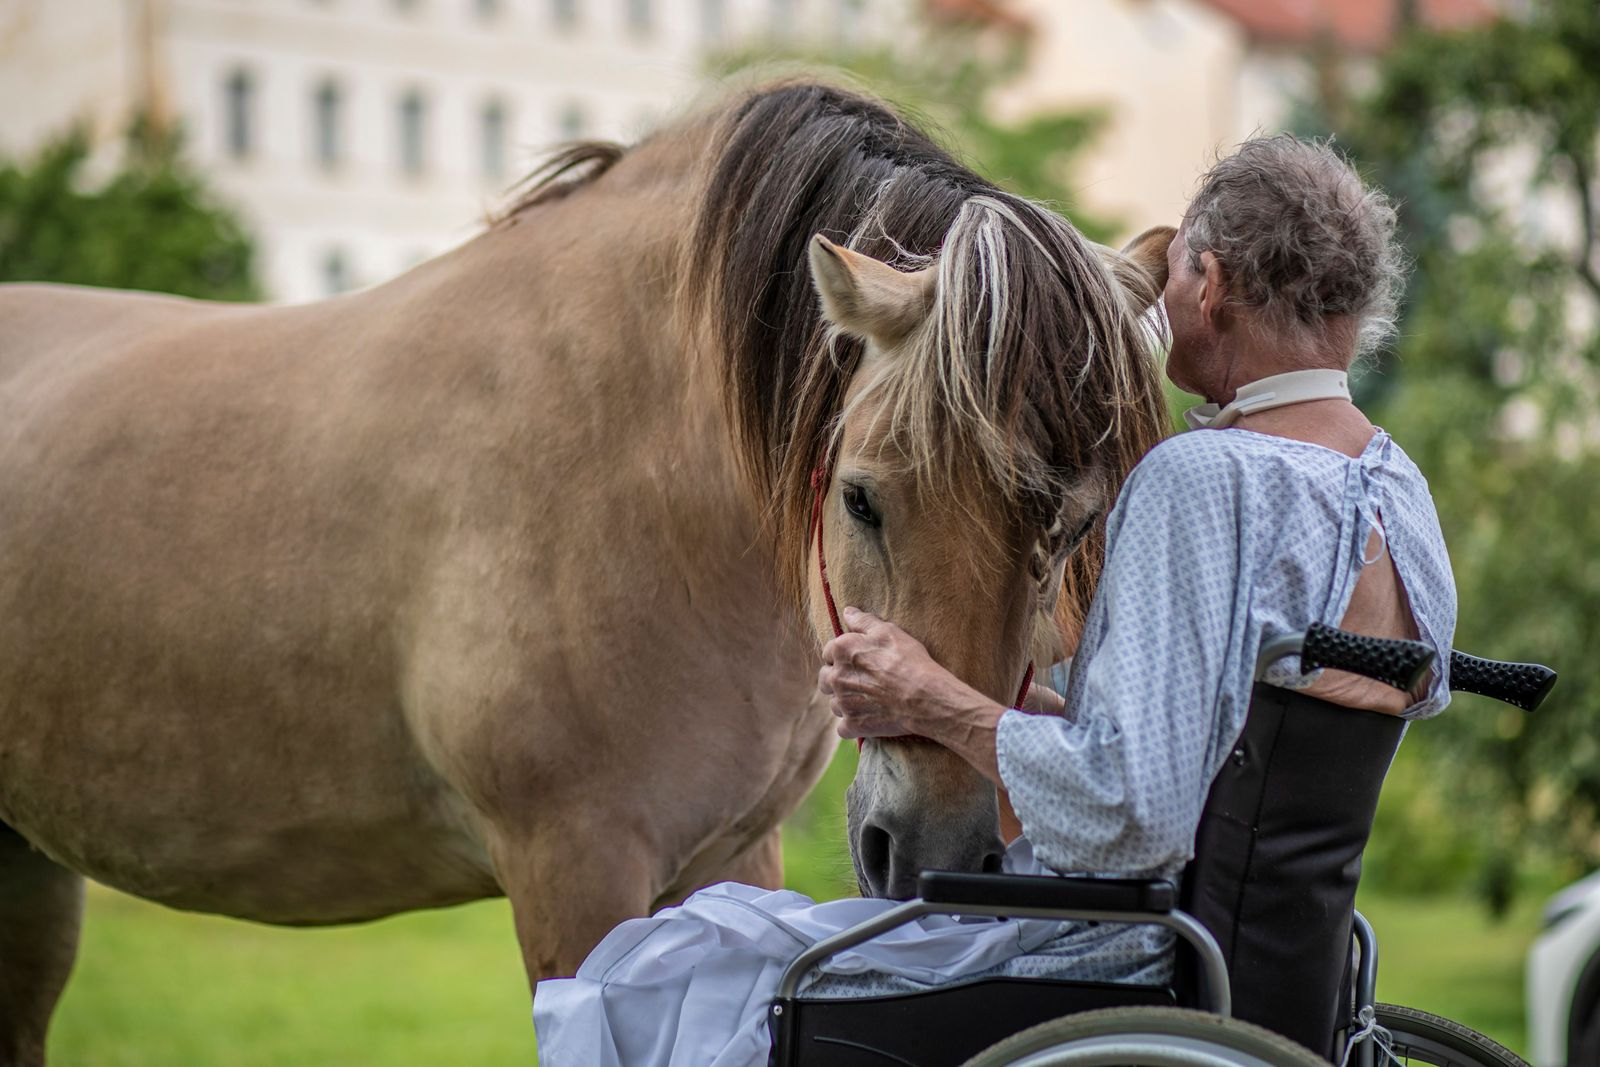 Horse touch therapy for patients in Prague, Czech Republic - 21 Jul 2020